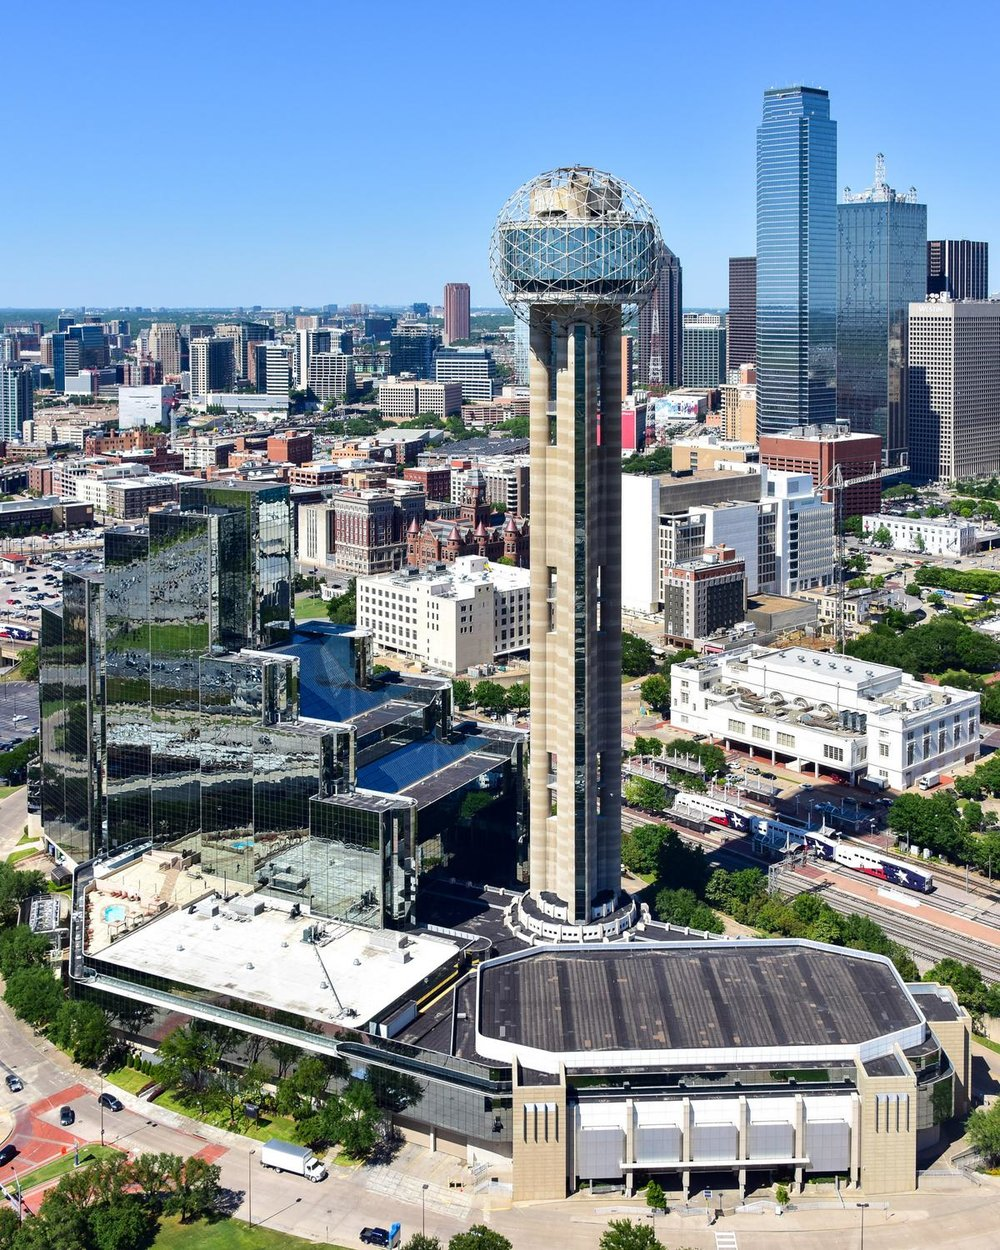 Reunion Tower and Arena, Dallas, Texas - Dallas Aerial Photography Dallas - Dallas Aerial Drone Image - Dallas, TX